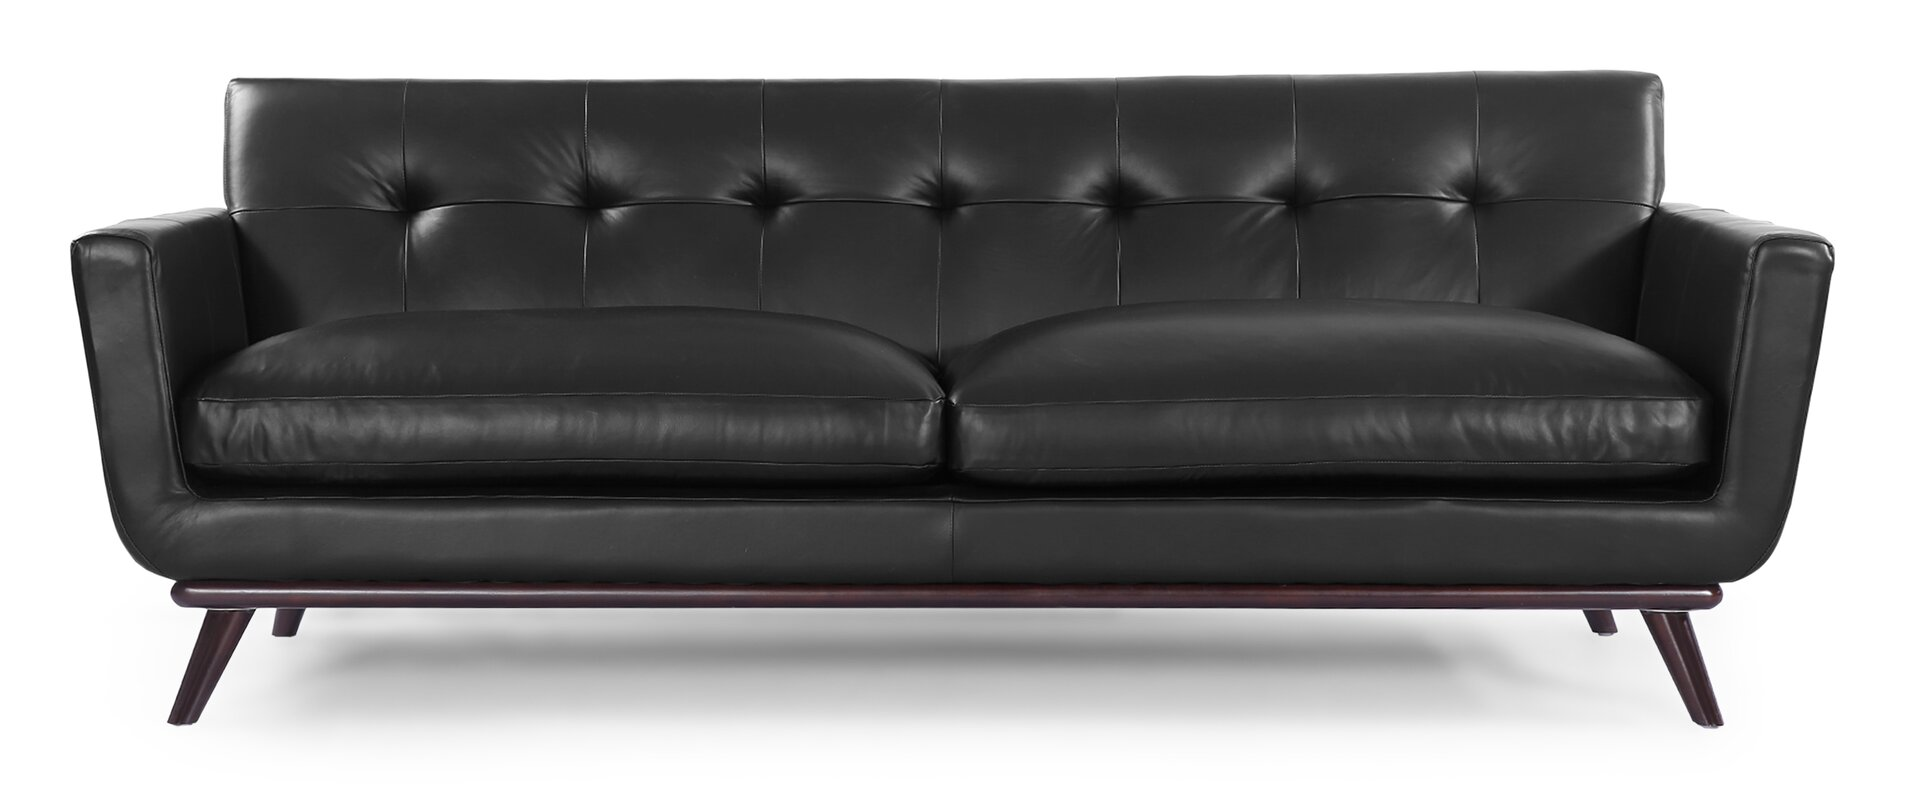 modern vintage couch. Luther Mid Century Modern Vintage Leather Sofa Couch